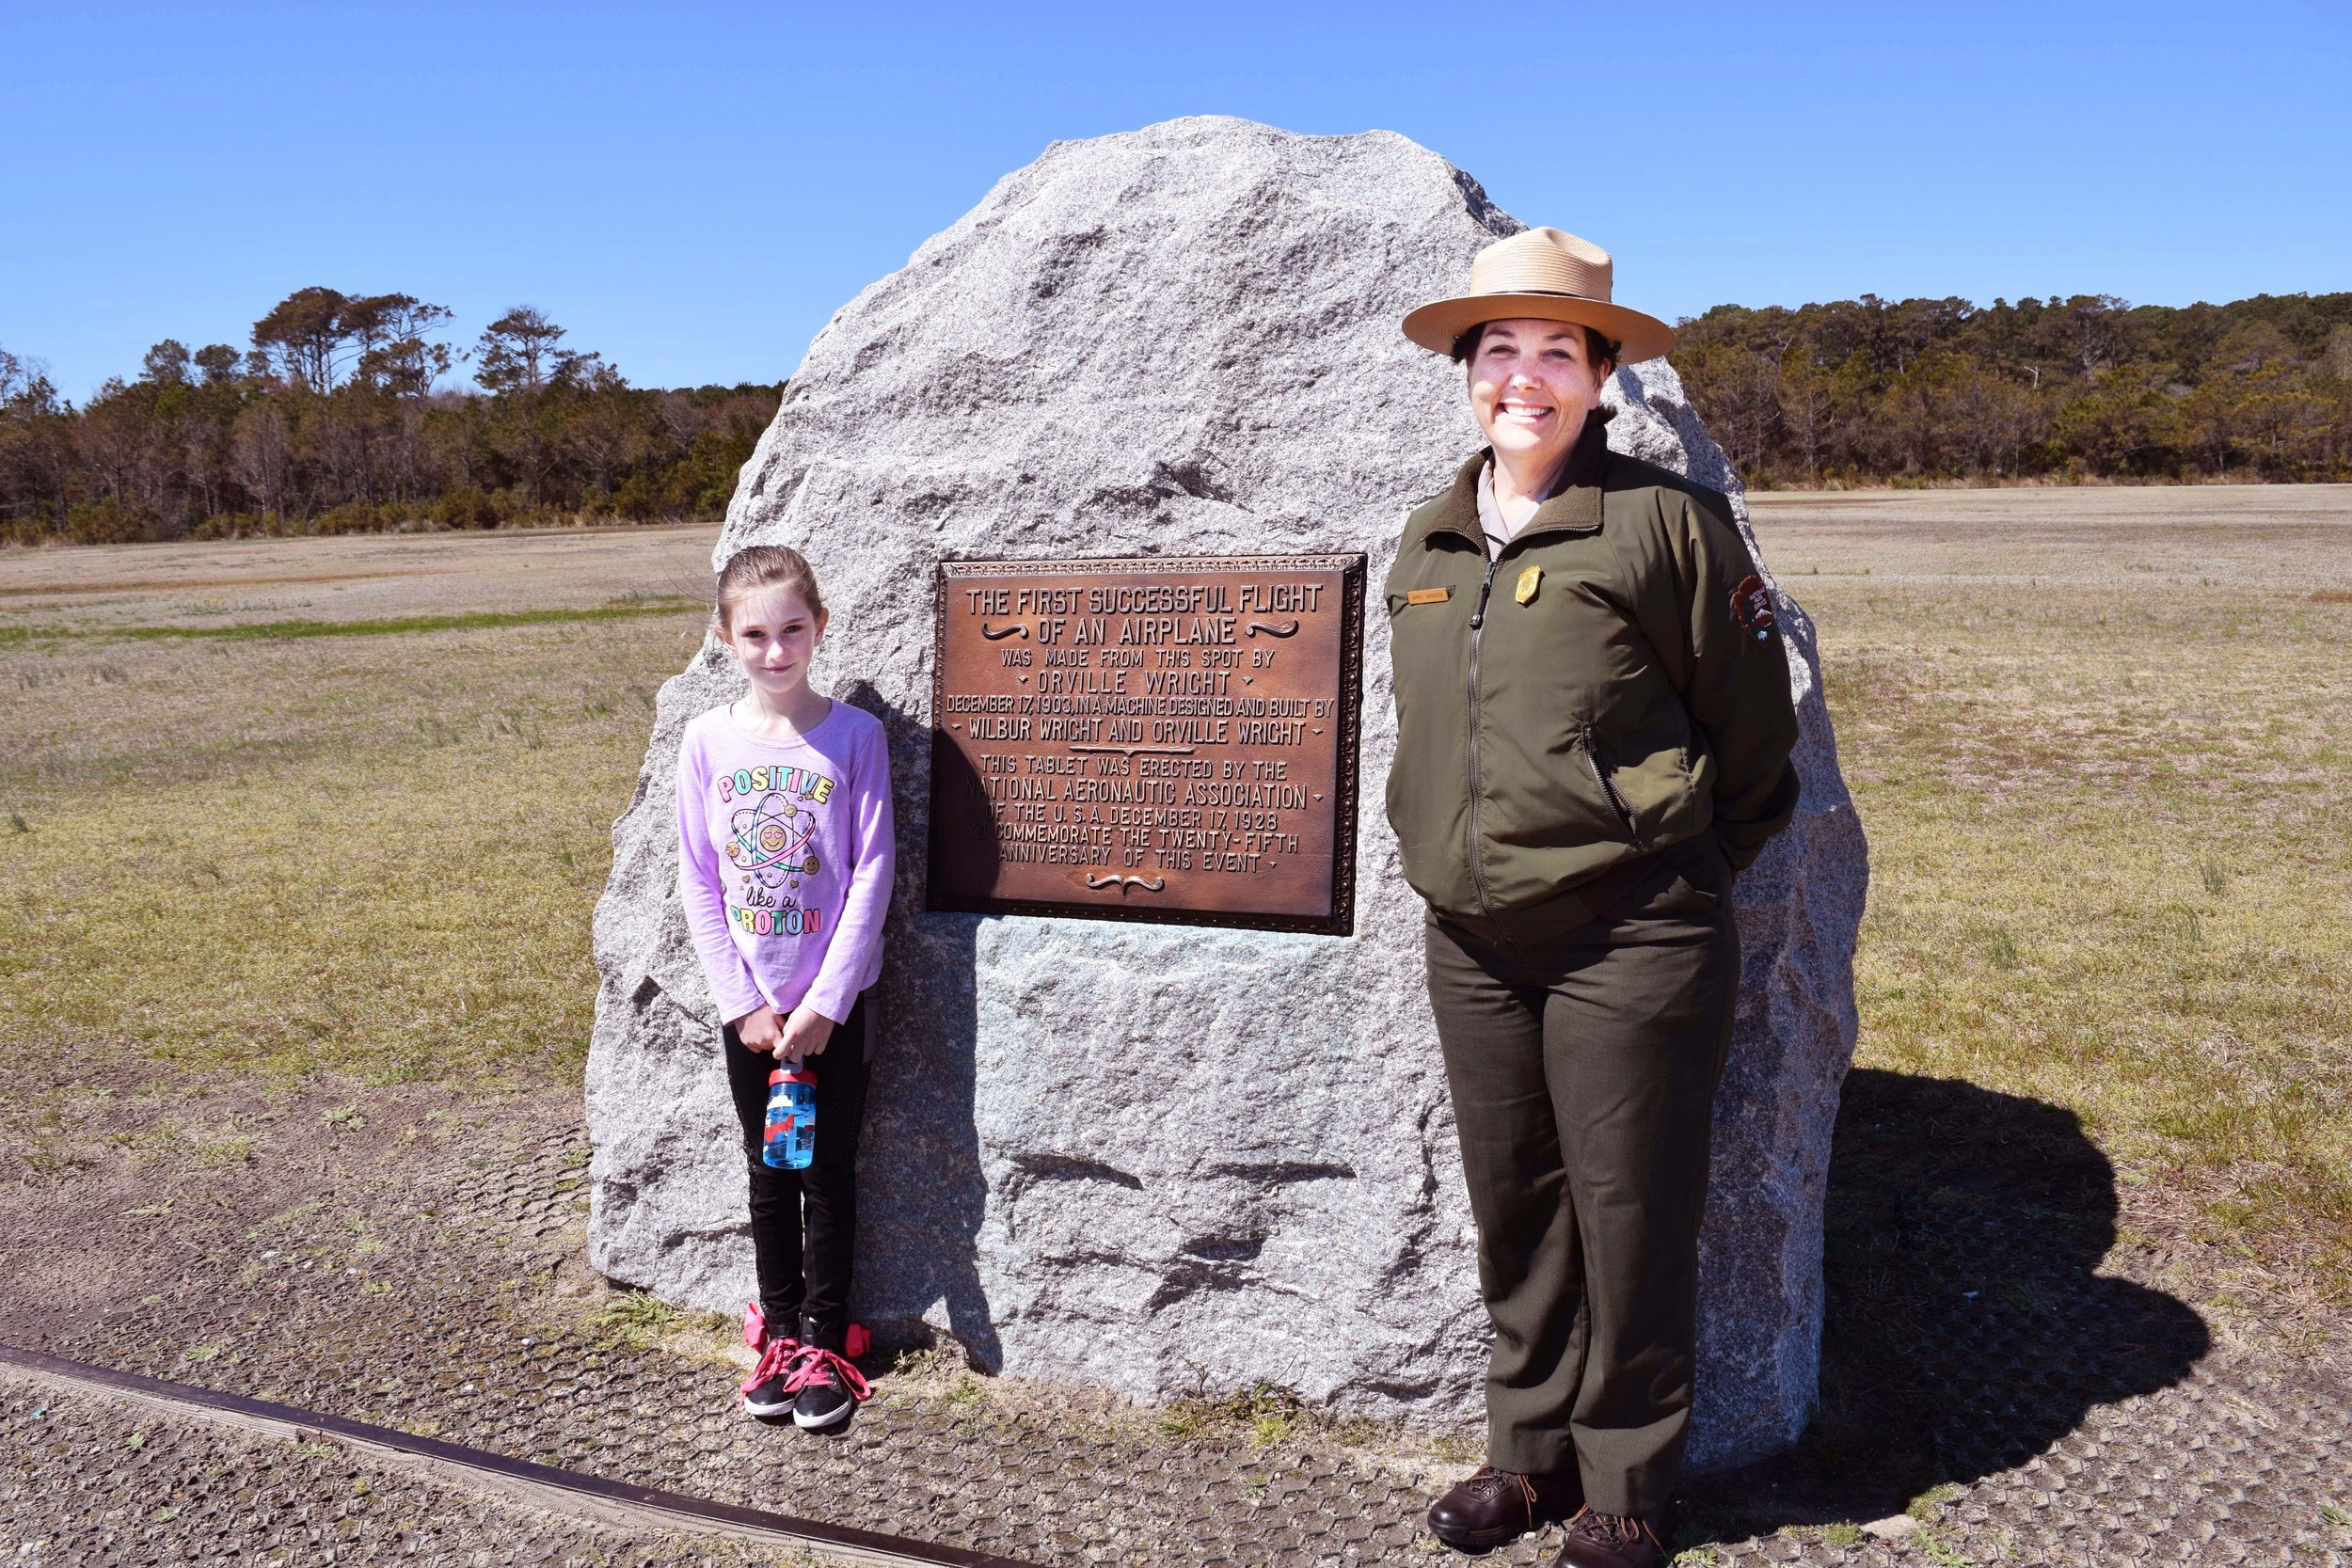 Molly Lam, 10, left, of Abilene, Texas poses with park ranger Amiee Ginnever at the lift-off monument at Wright Brothers National Memorial.